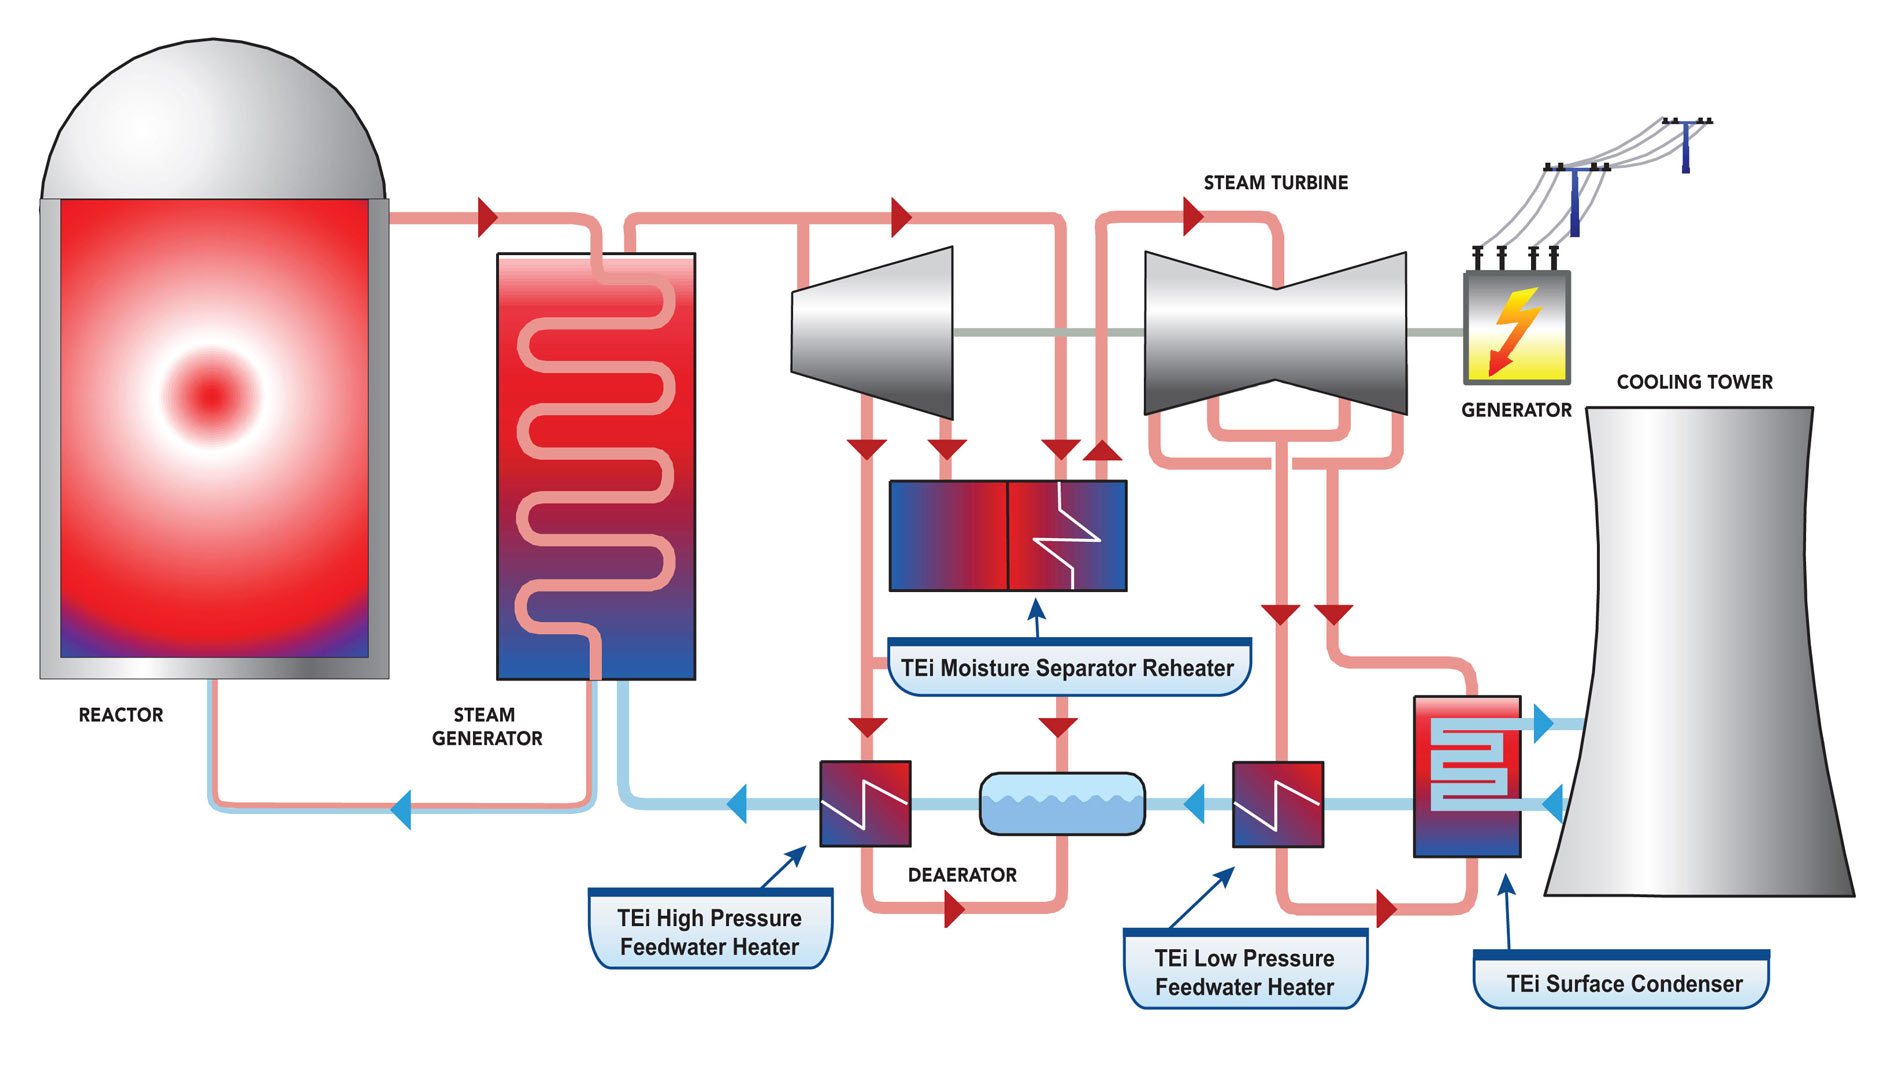 Nuclear Power Plant schematic showing the services and products Babcock Power offers